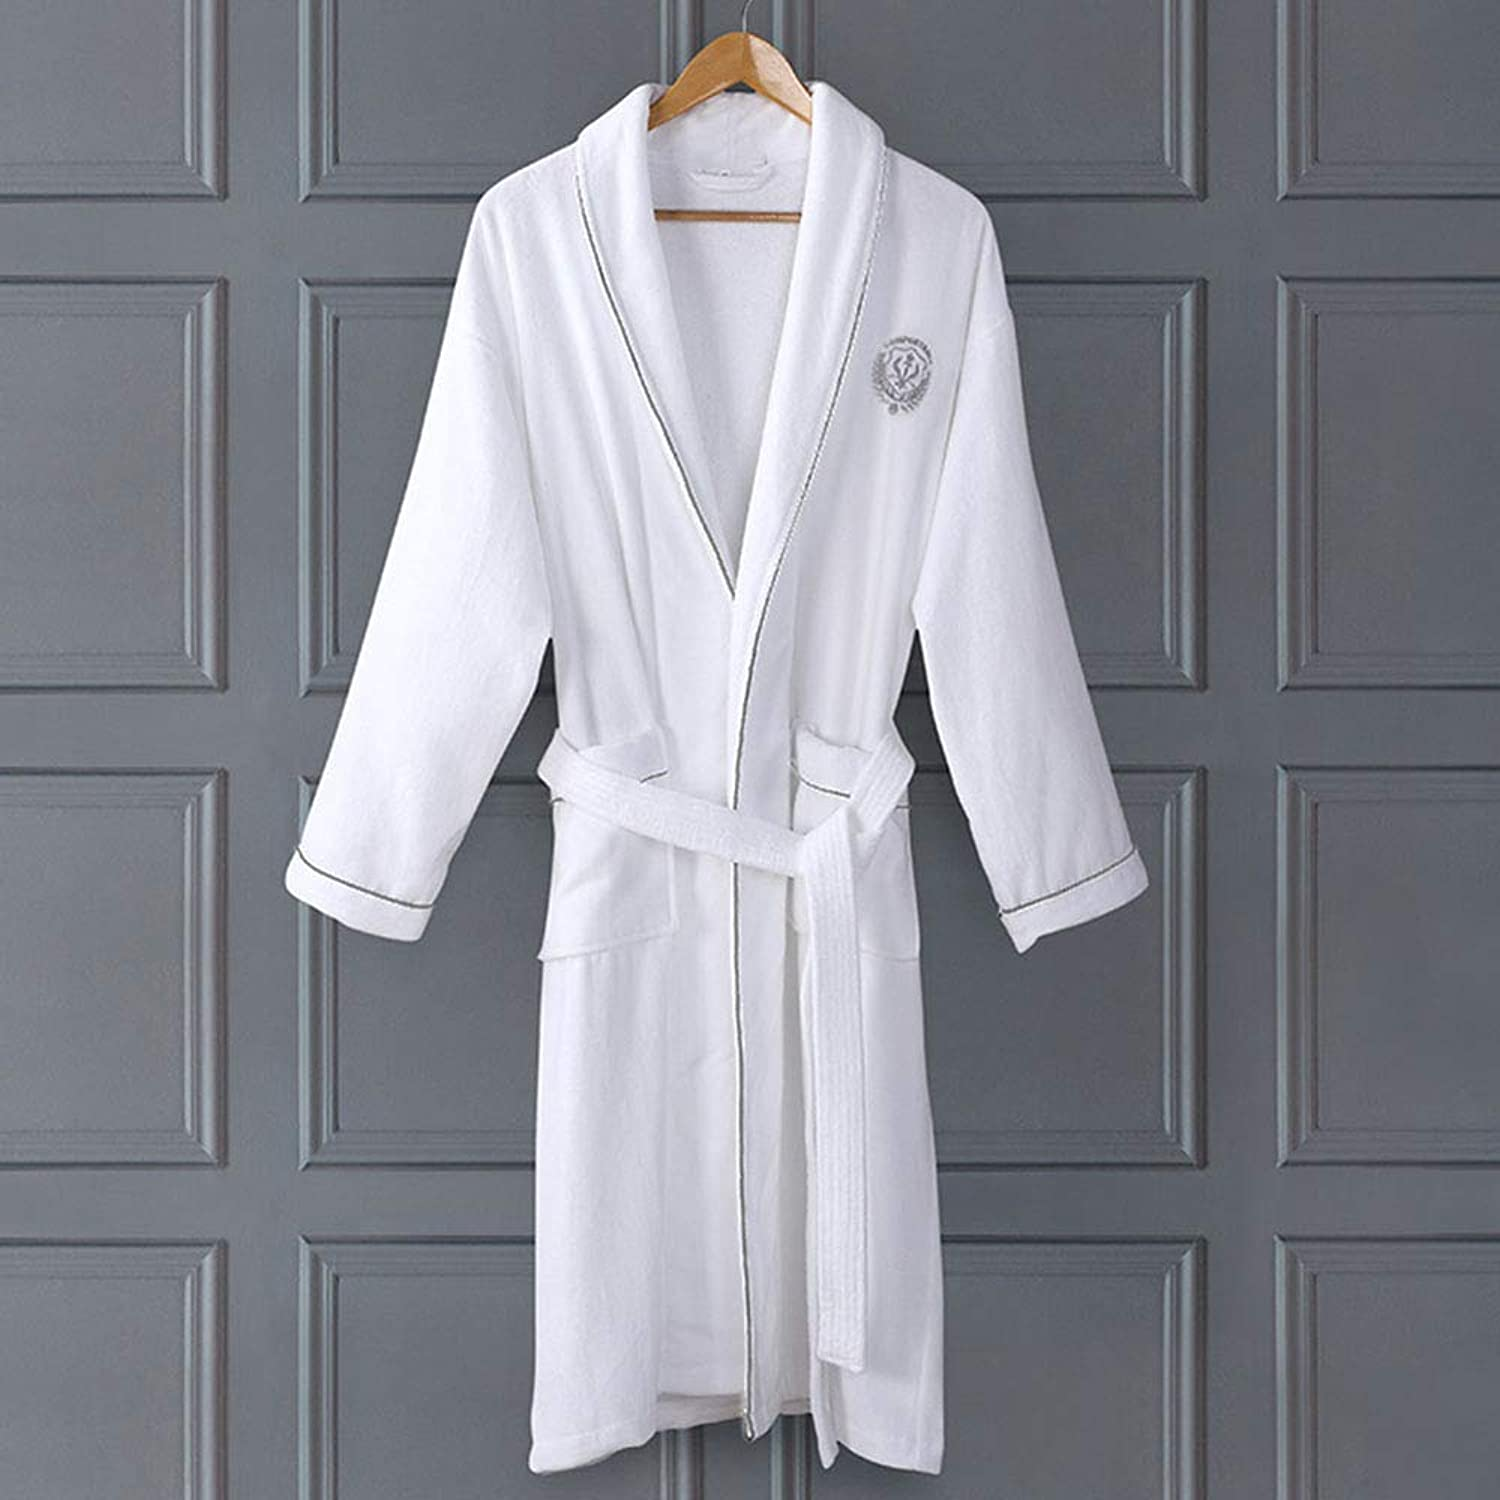 Bathrobe, Men's Women's Cotton Absorbent Towel Robes Couples Hotel Thickening Dressing Gown